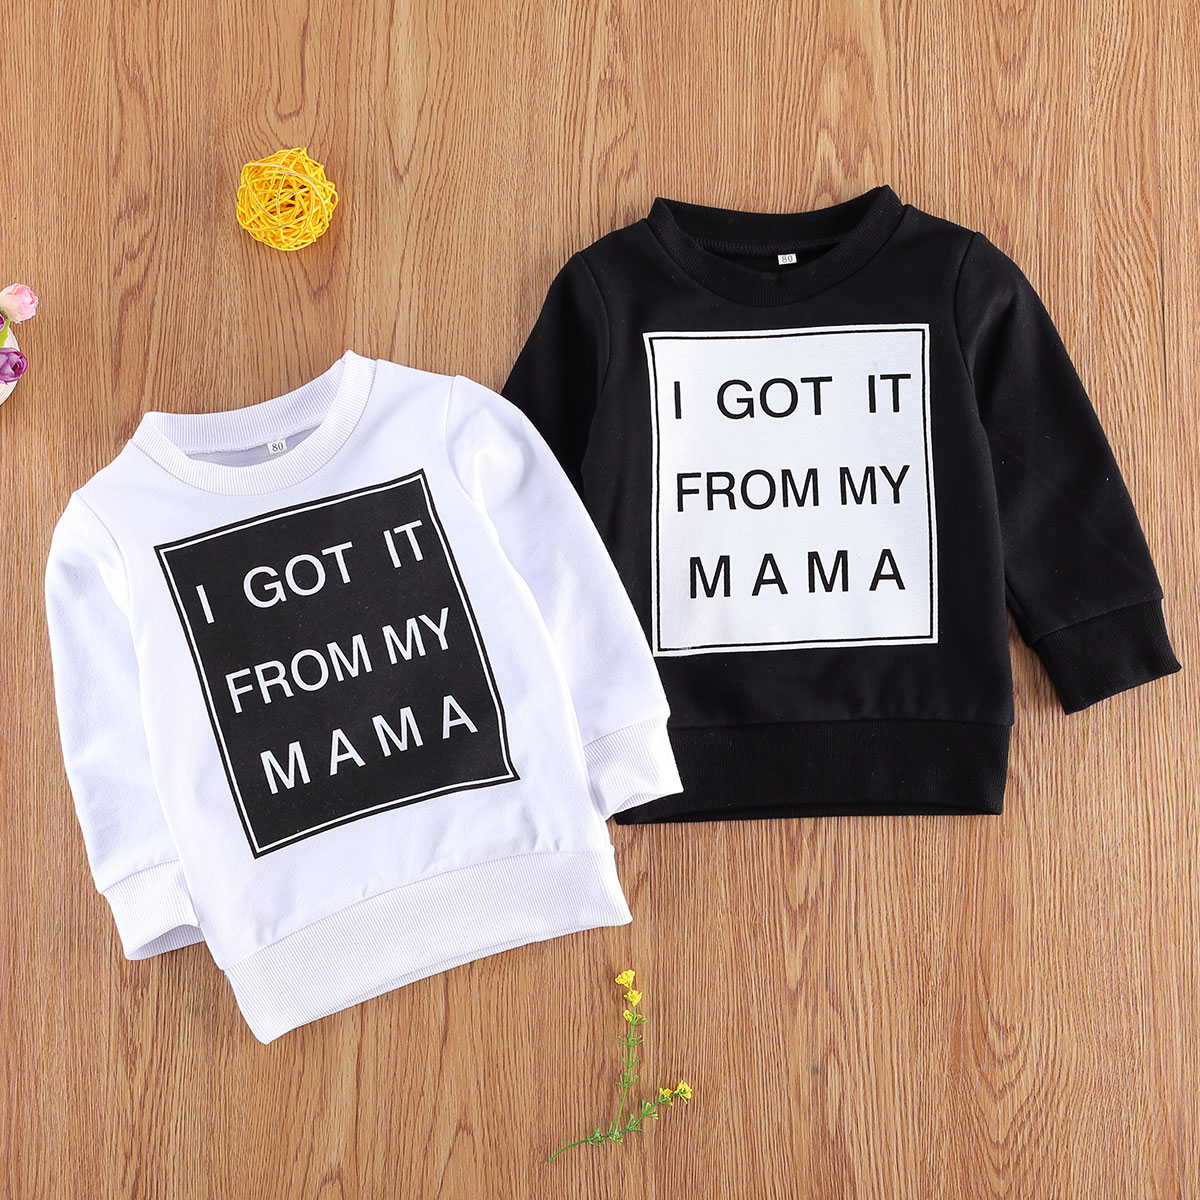 Pudcoco Newest Fashion Newborn Baby Clothes Long Sleeve Letter Print O-Neck Sweatshirt Tops Outfit Clothes For Girl Boy Bbay 6